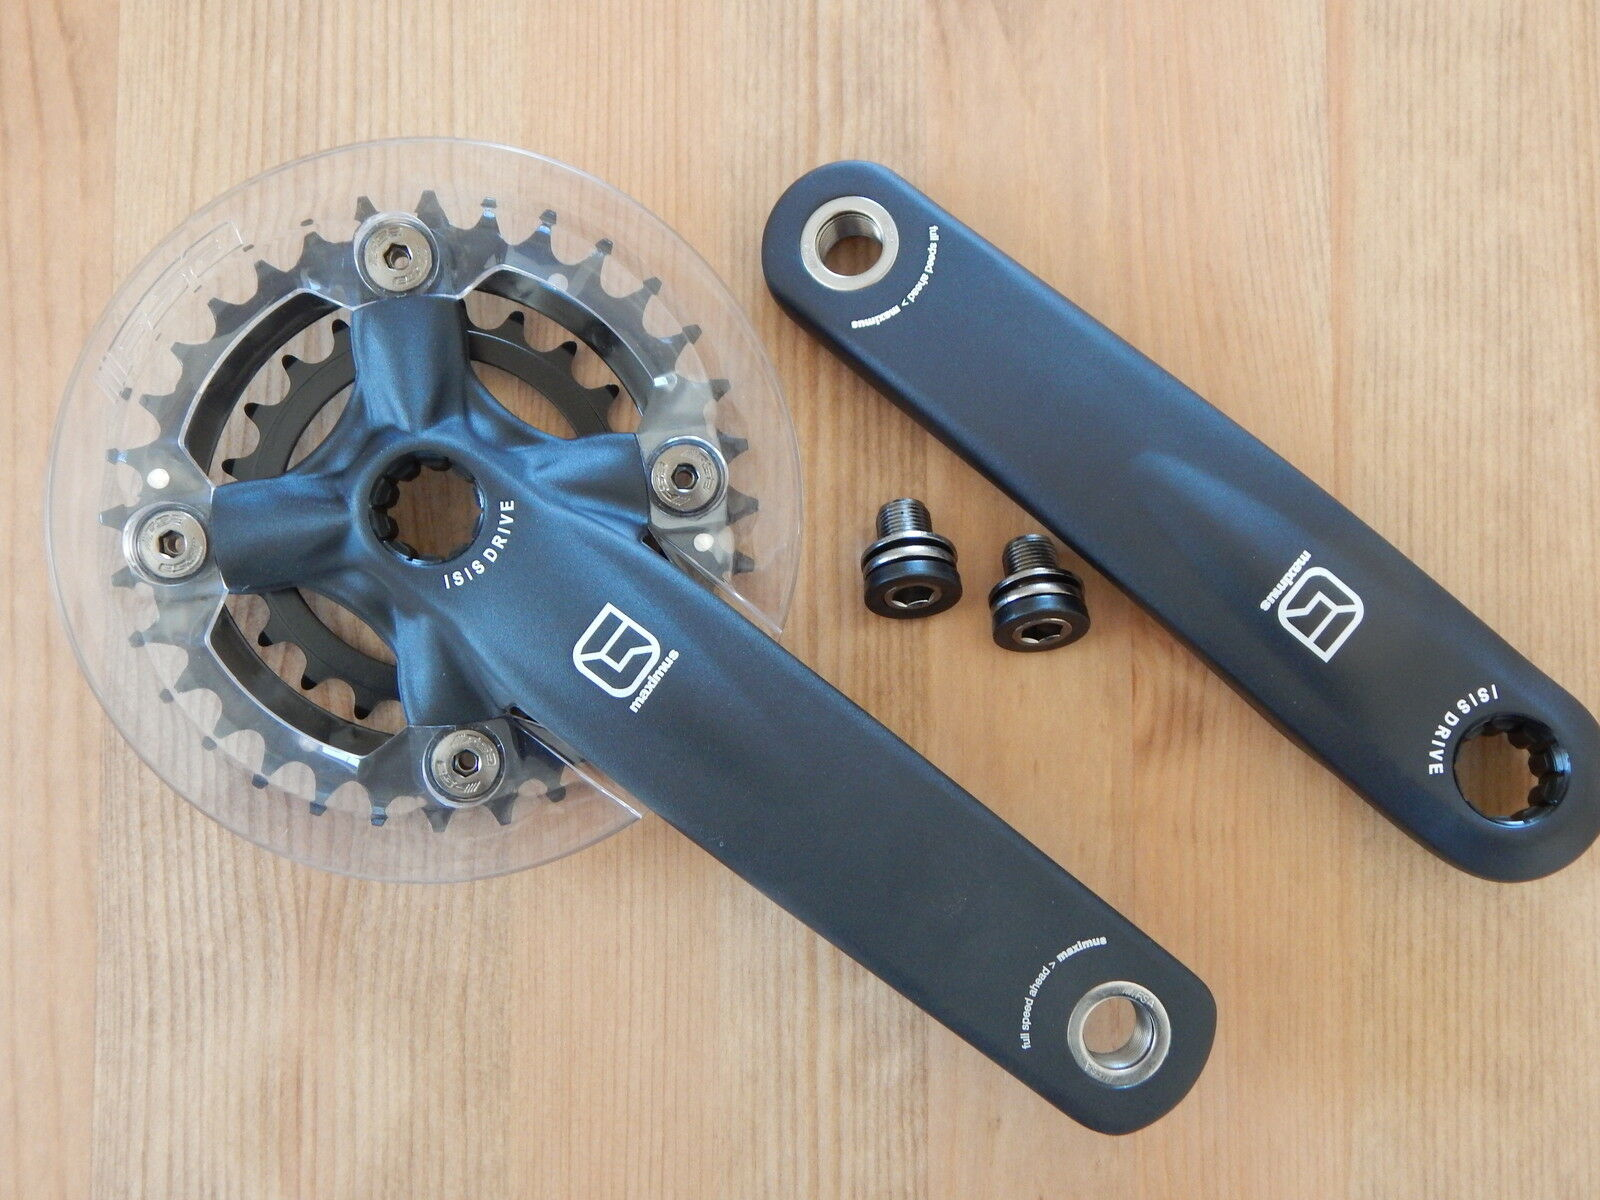 New Gravity Maximus Double Crankset 22-32t 170mm ISIS w. FSA Bash Guard + Bolts